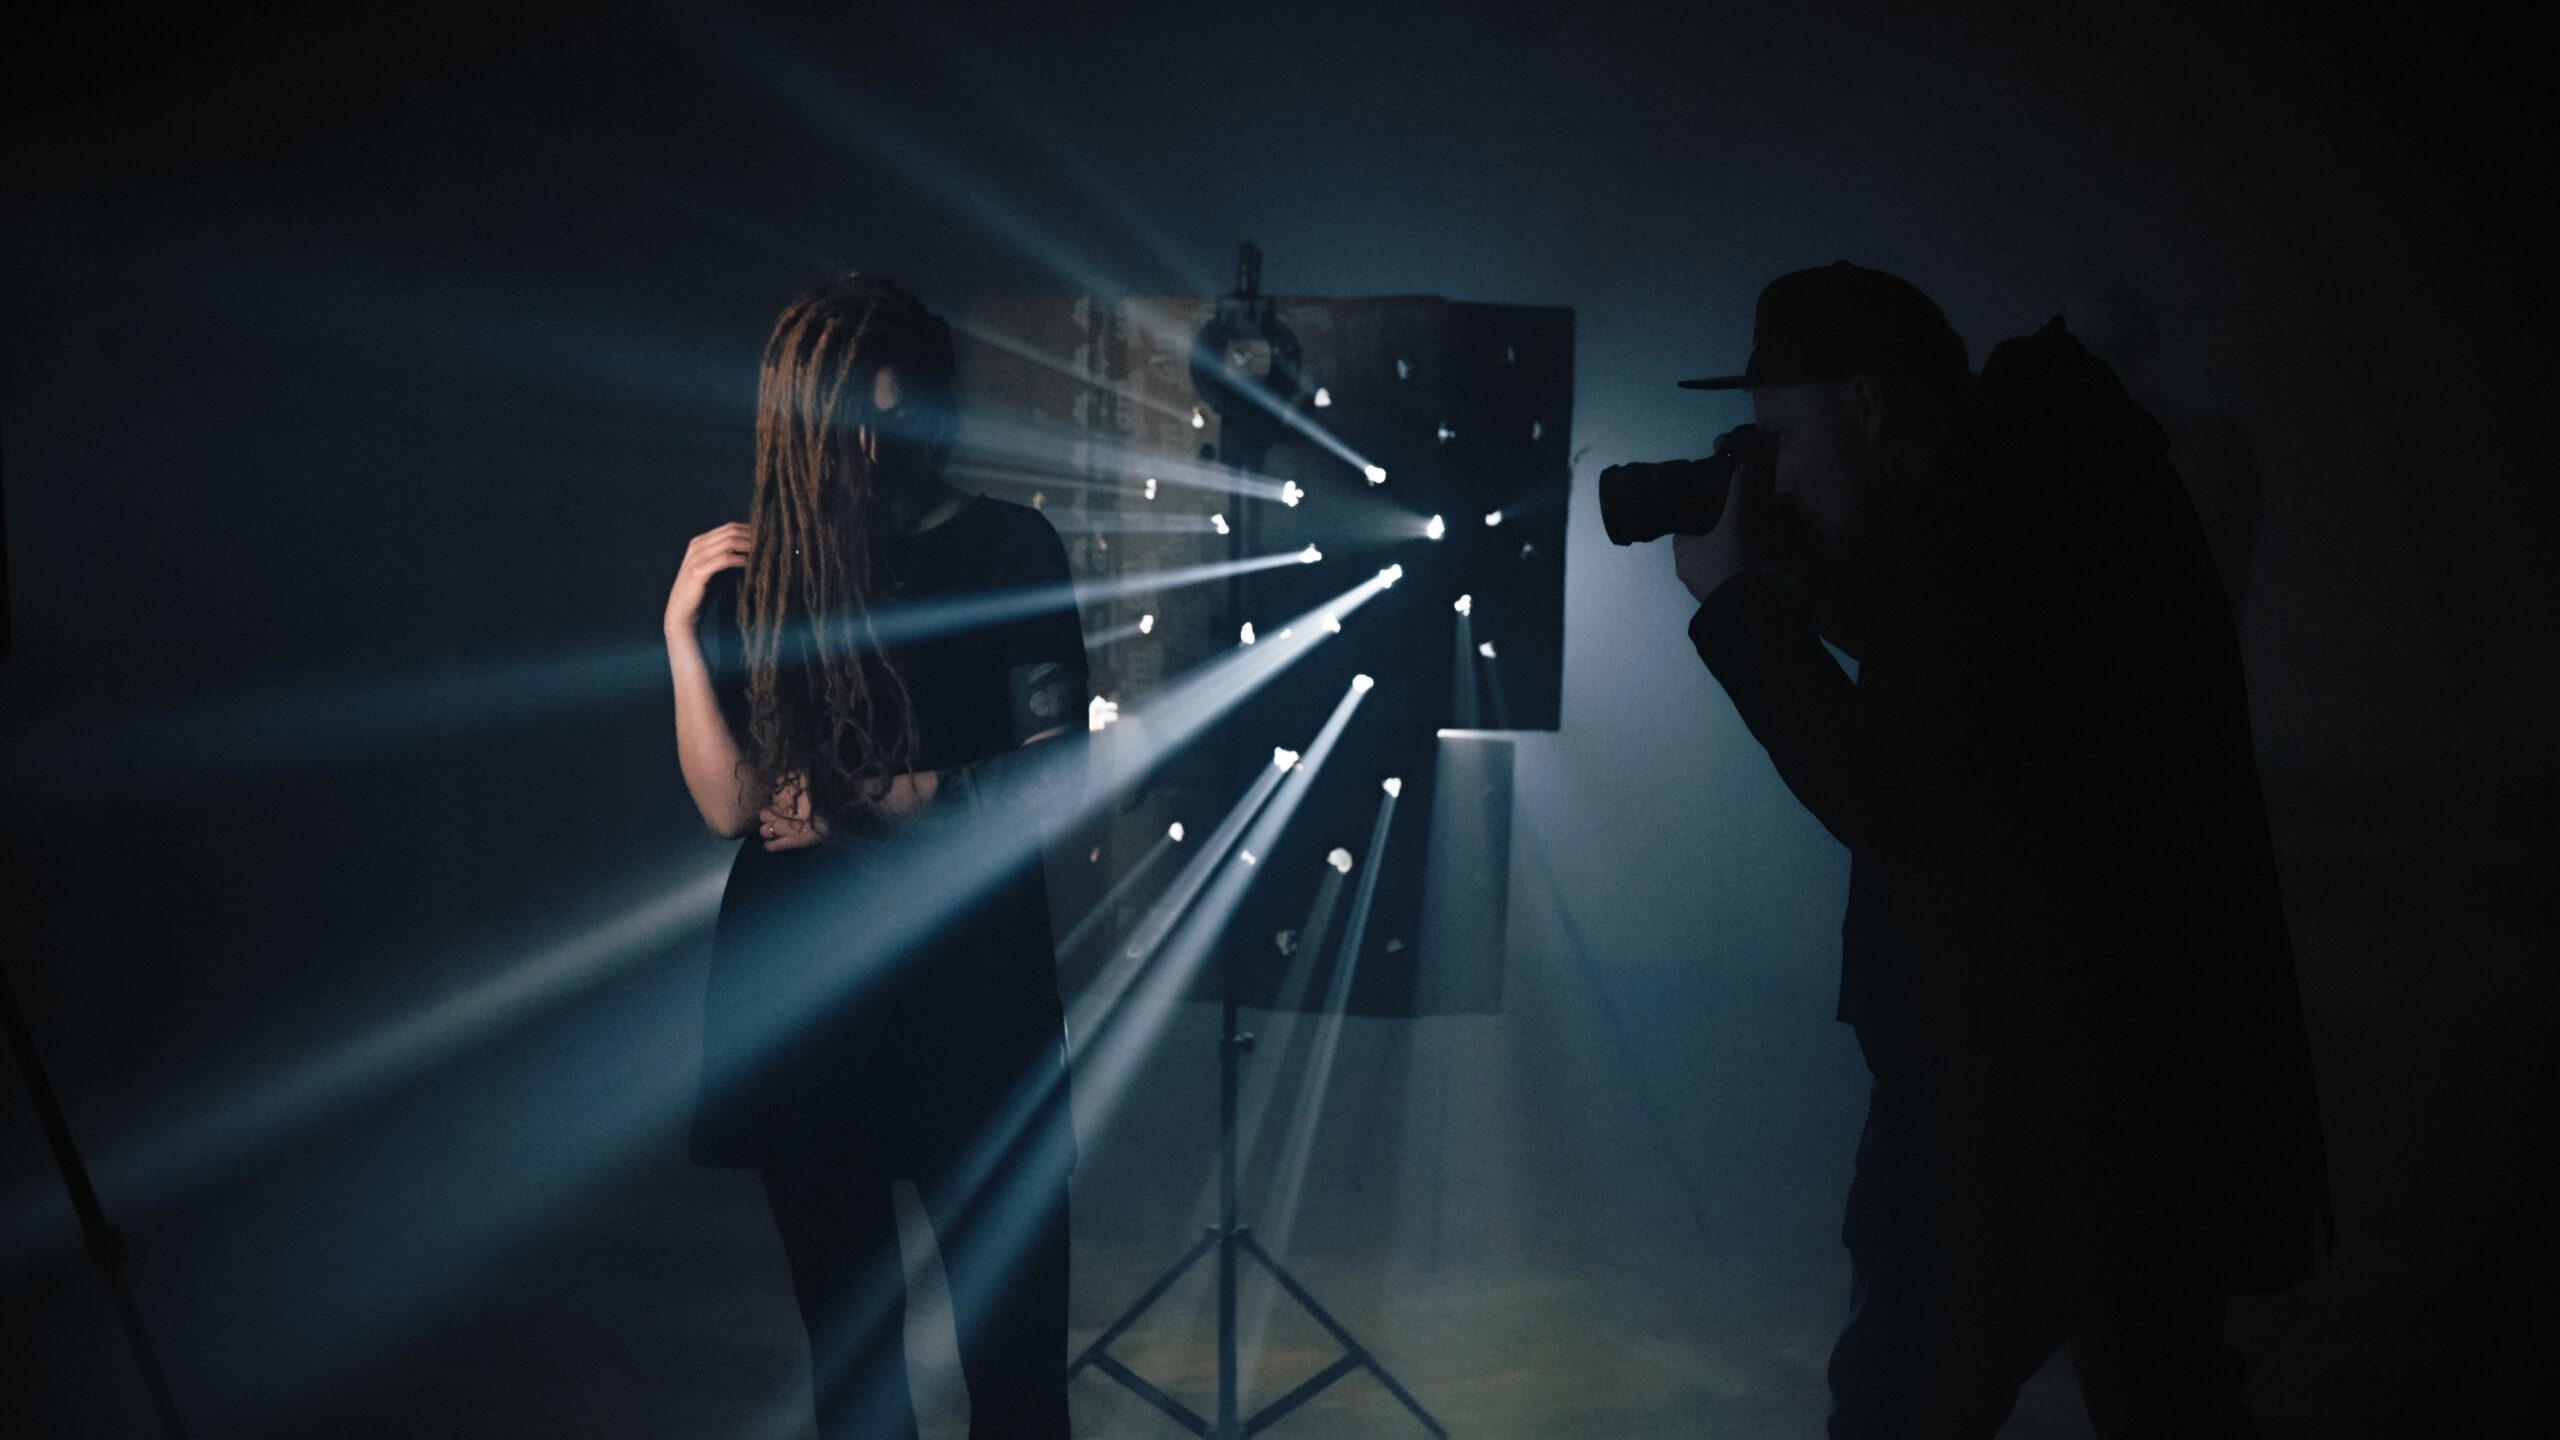 Effective light rays: how to easily create and use them in your photography